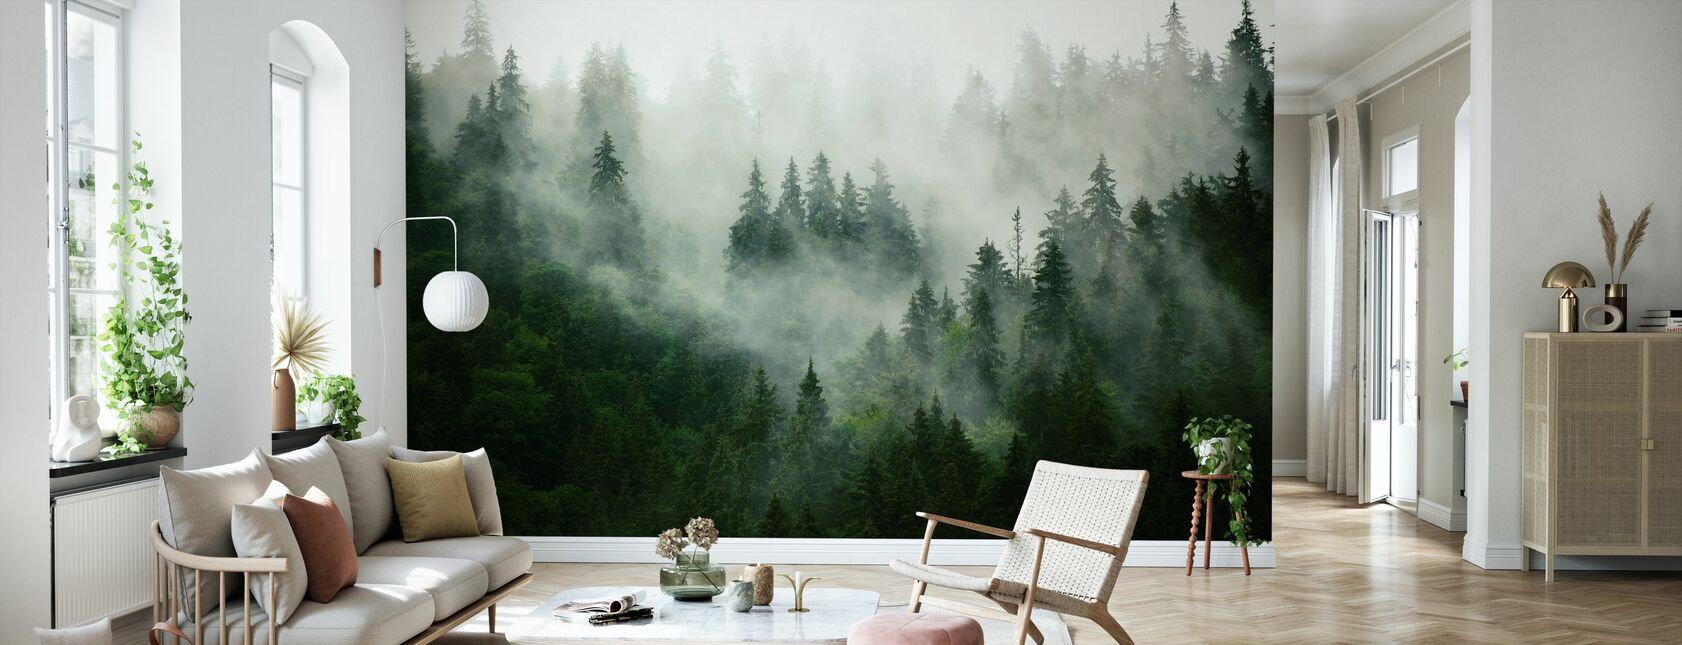 Foggy Forest - Wallpaper - Living Room